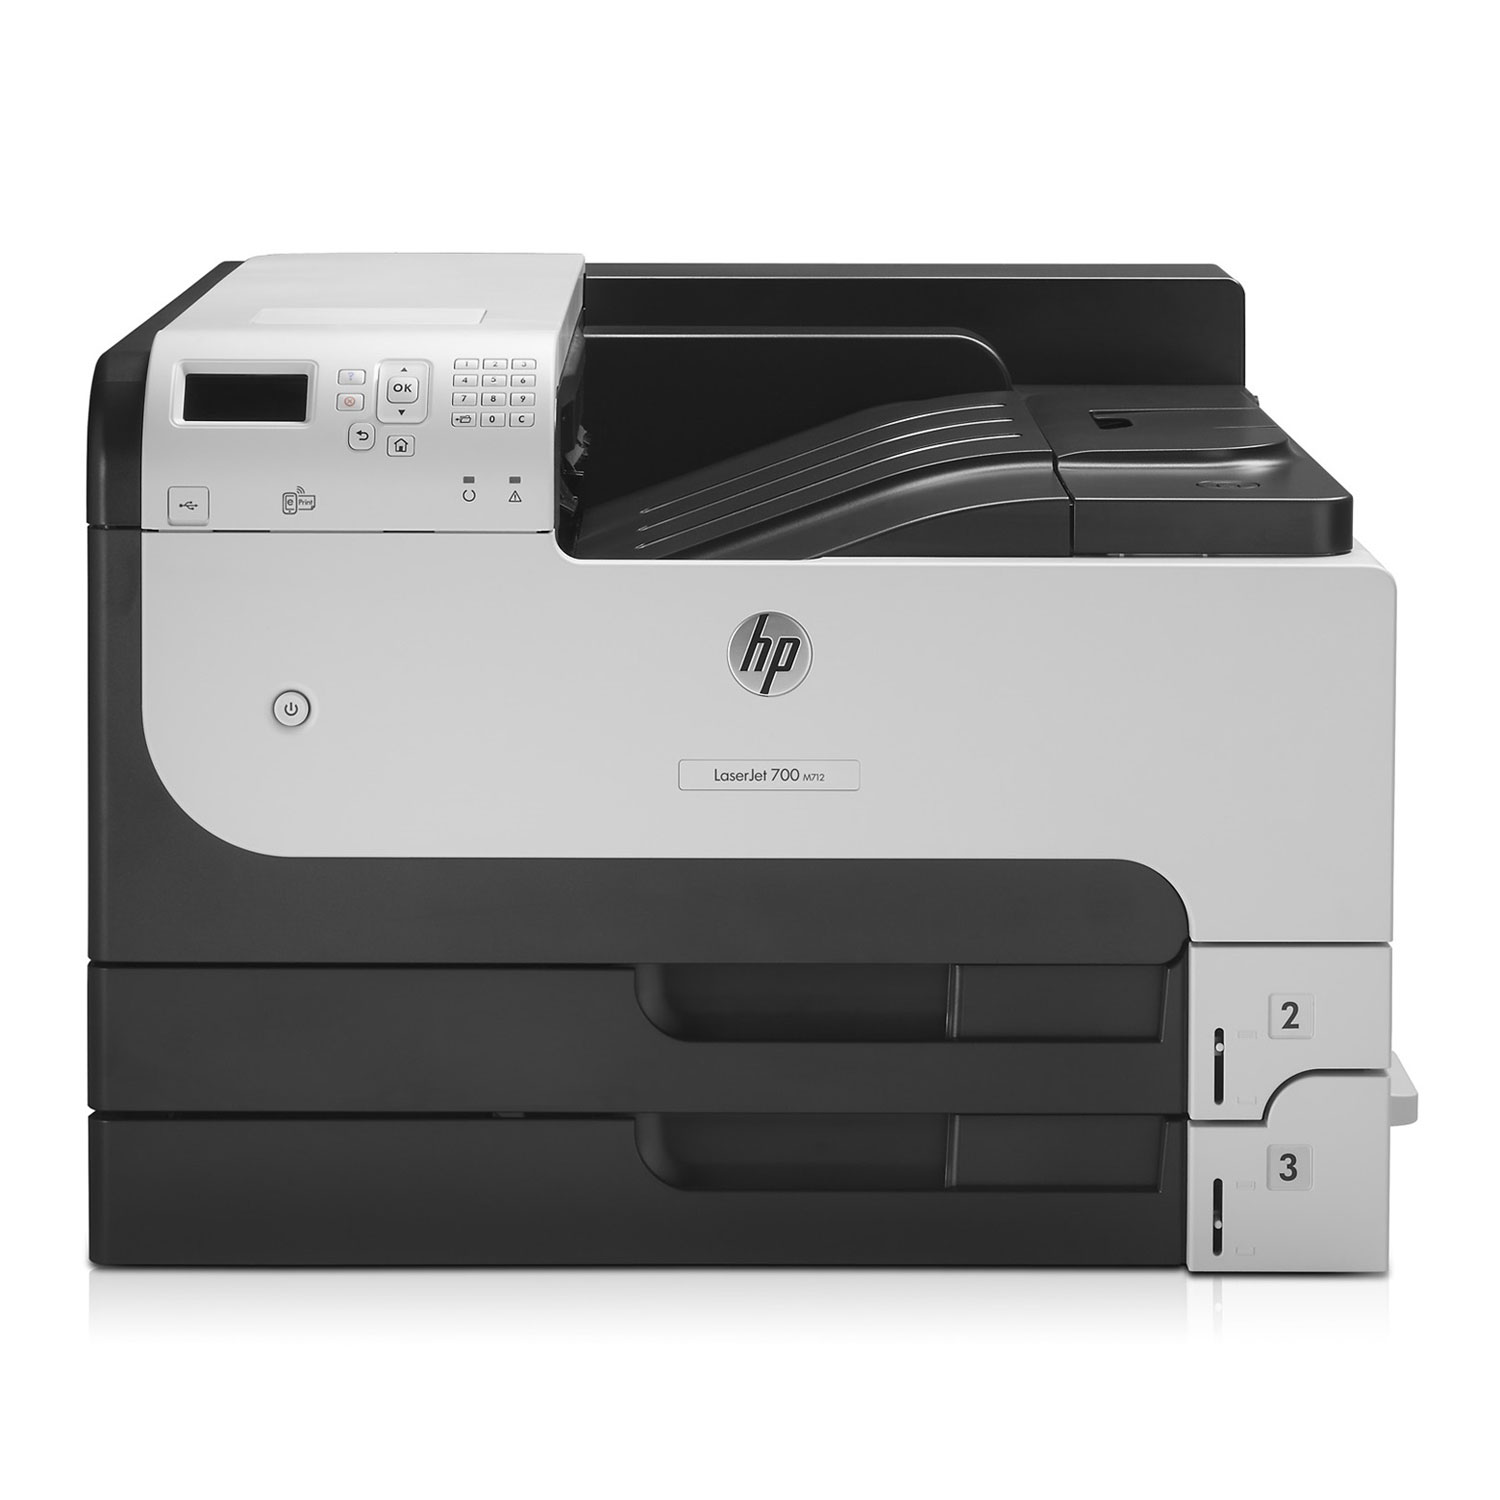 hp laserjet enterprise 700 m712dn imprimante laser hp. Black Bedroom Furniture Sets. Home Design Ideas